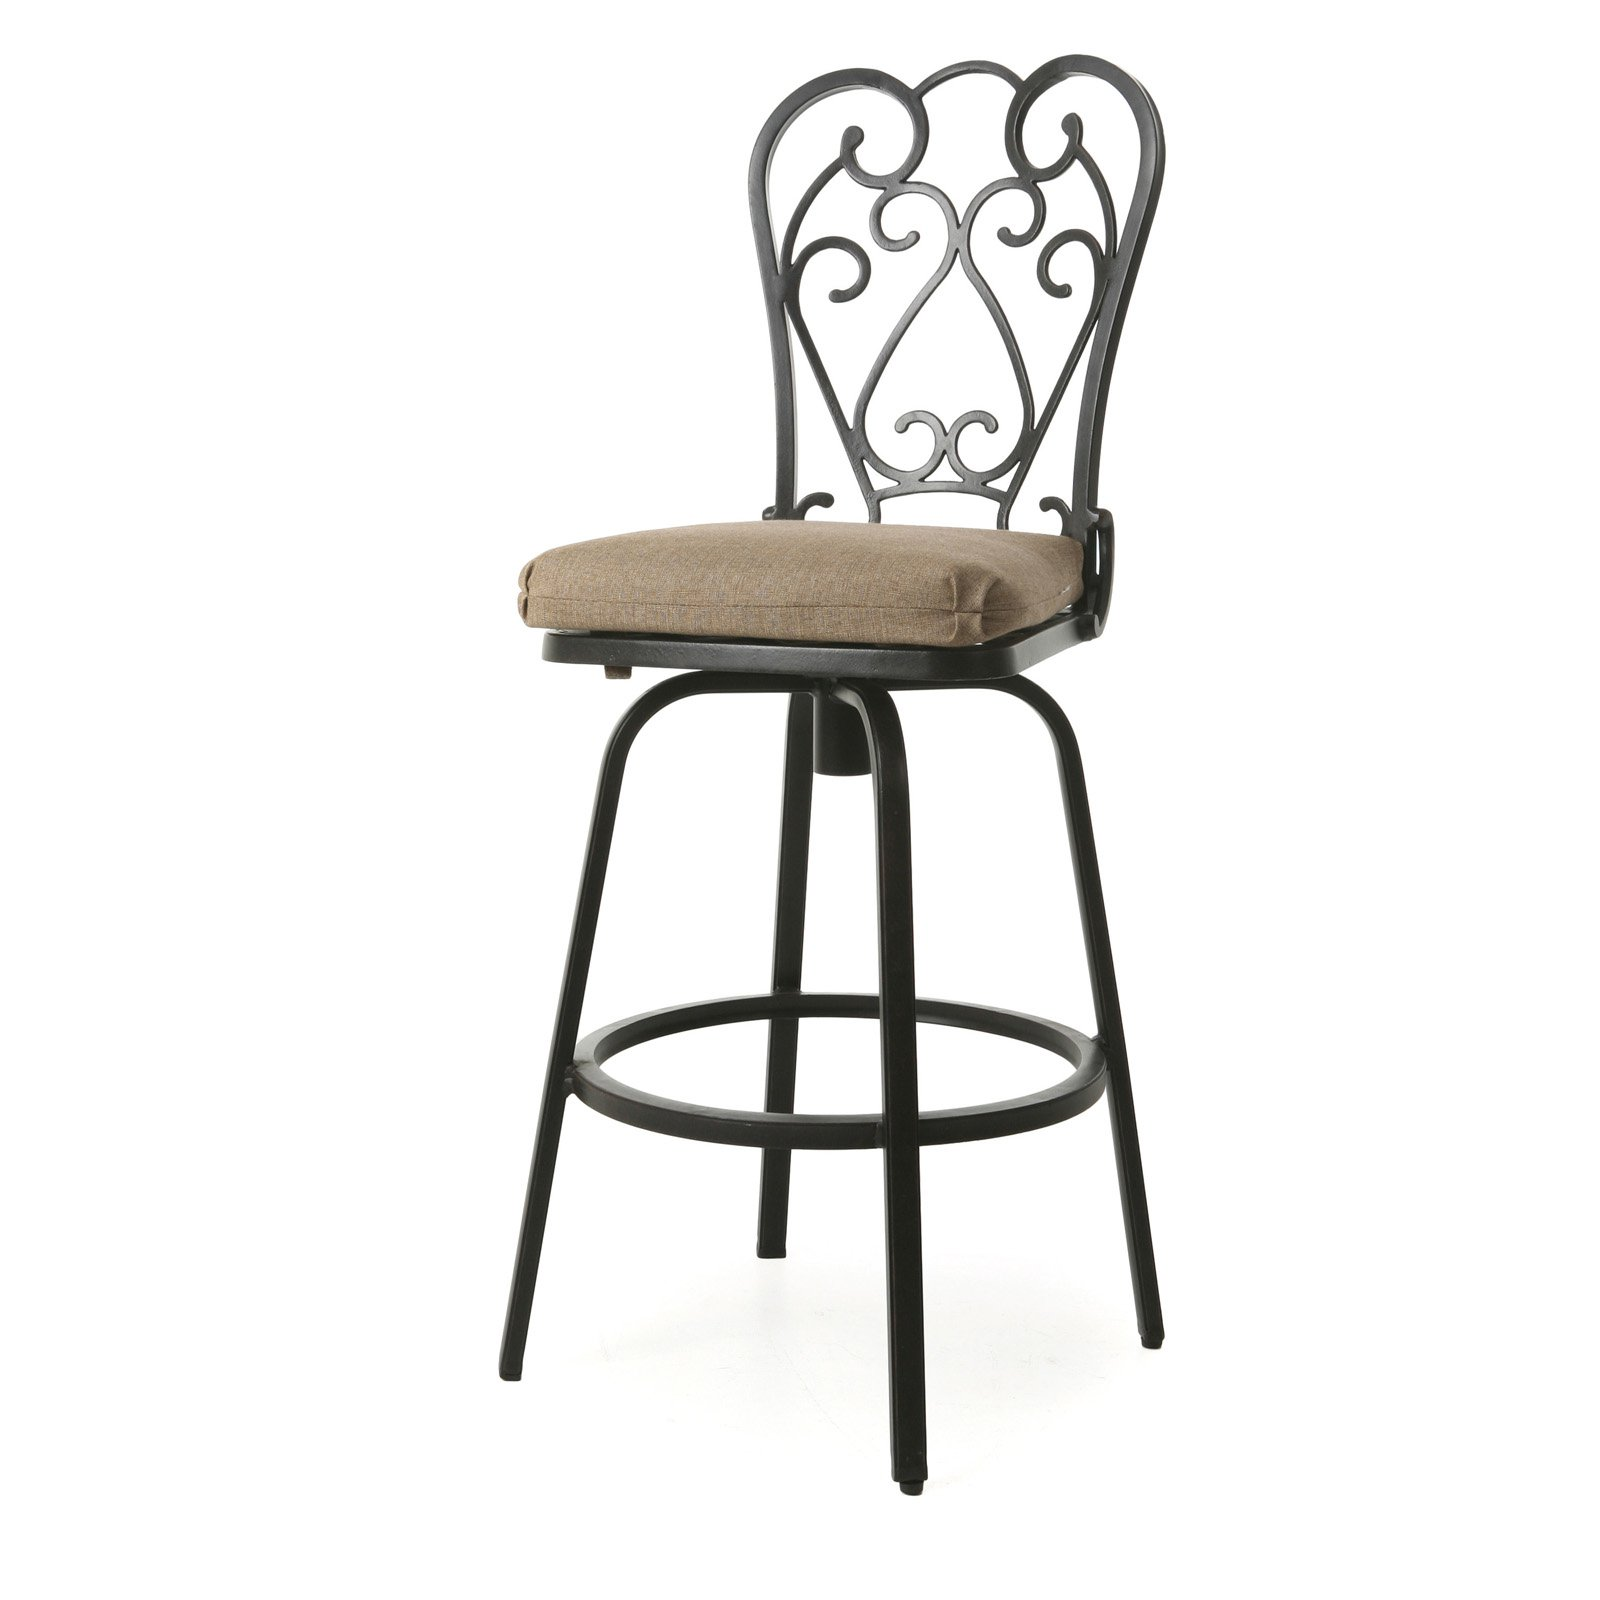 Impacterra Magnolia Ii 32 In Outdoor Bar Stool Walmartcom